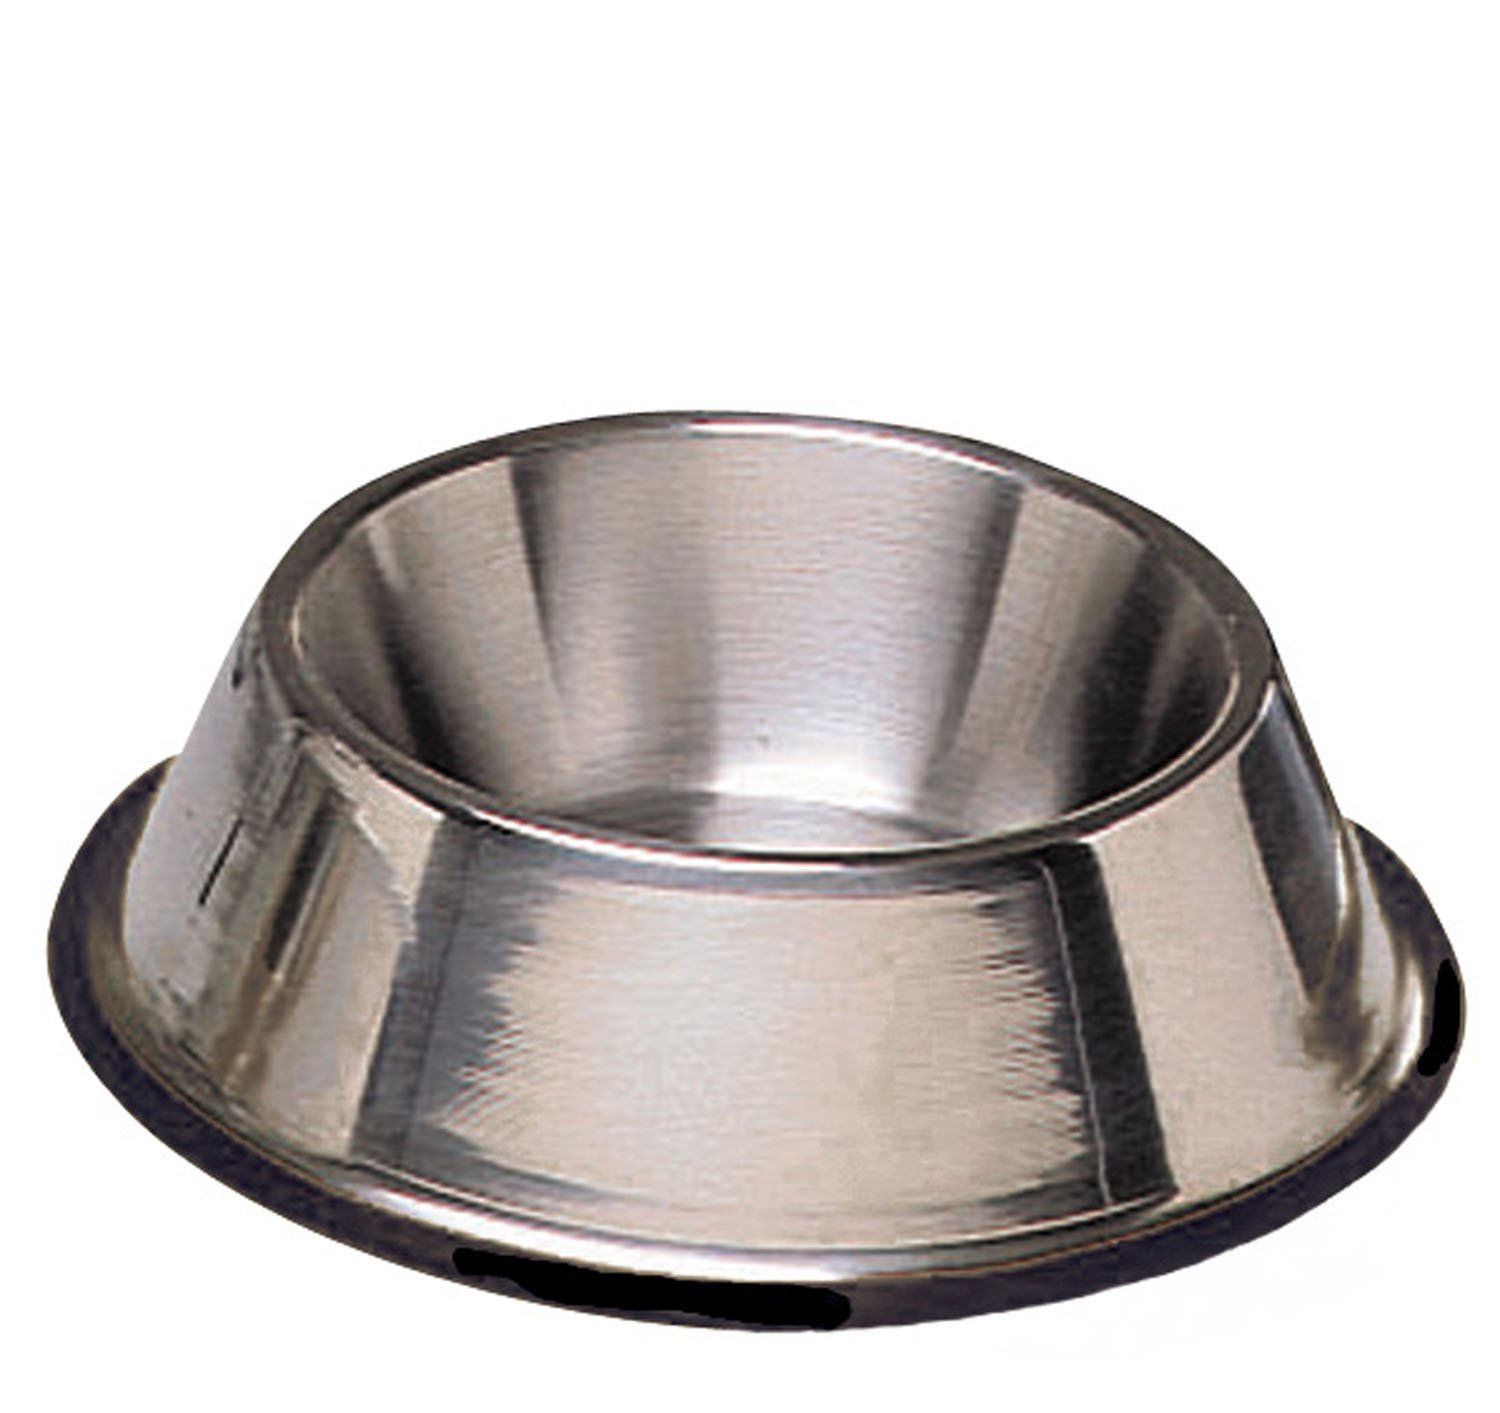 Proselect Stainless Steel X-Super Heavyweight Non-Tip Pet Bowl, 9-Inch, 3-Quart